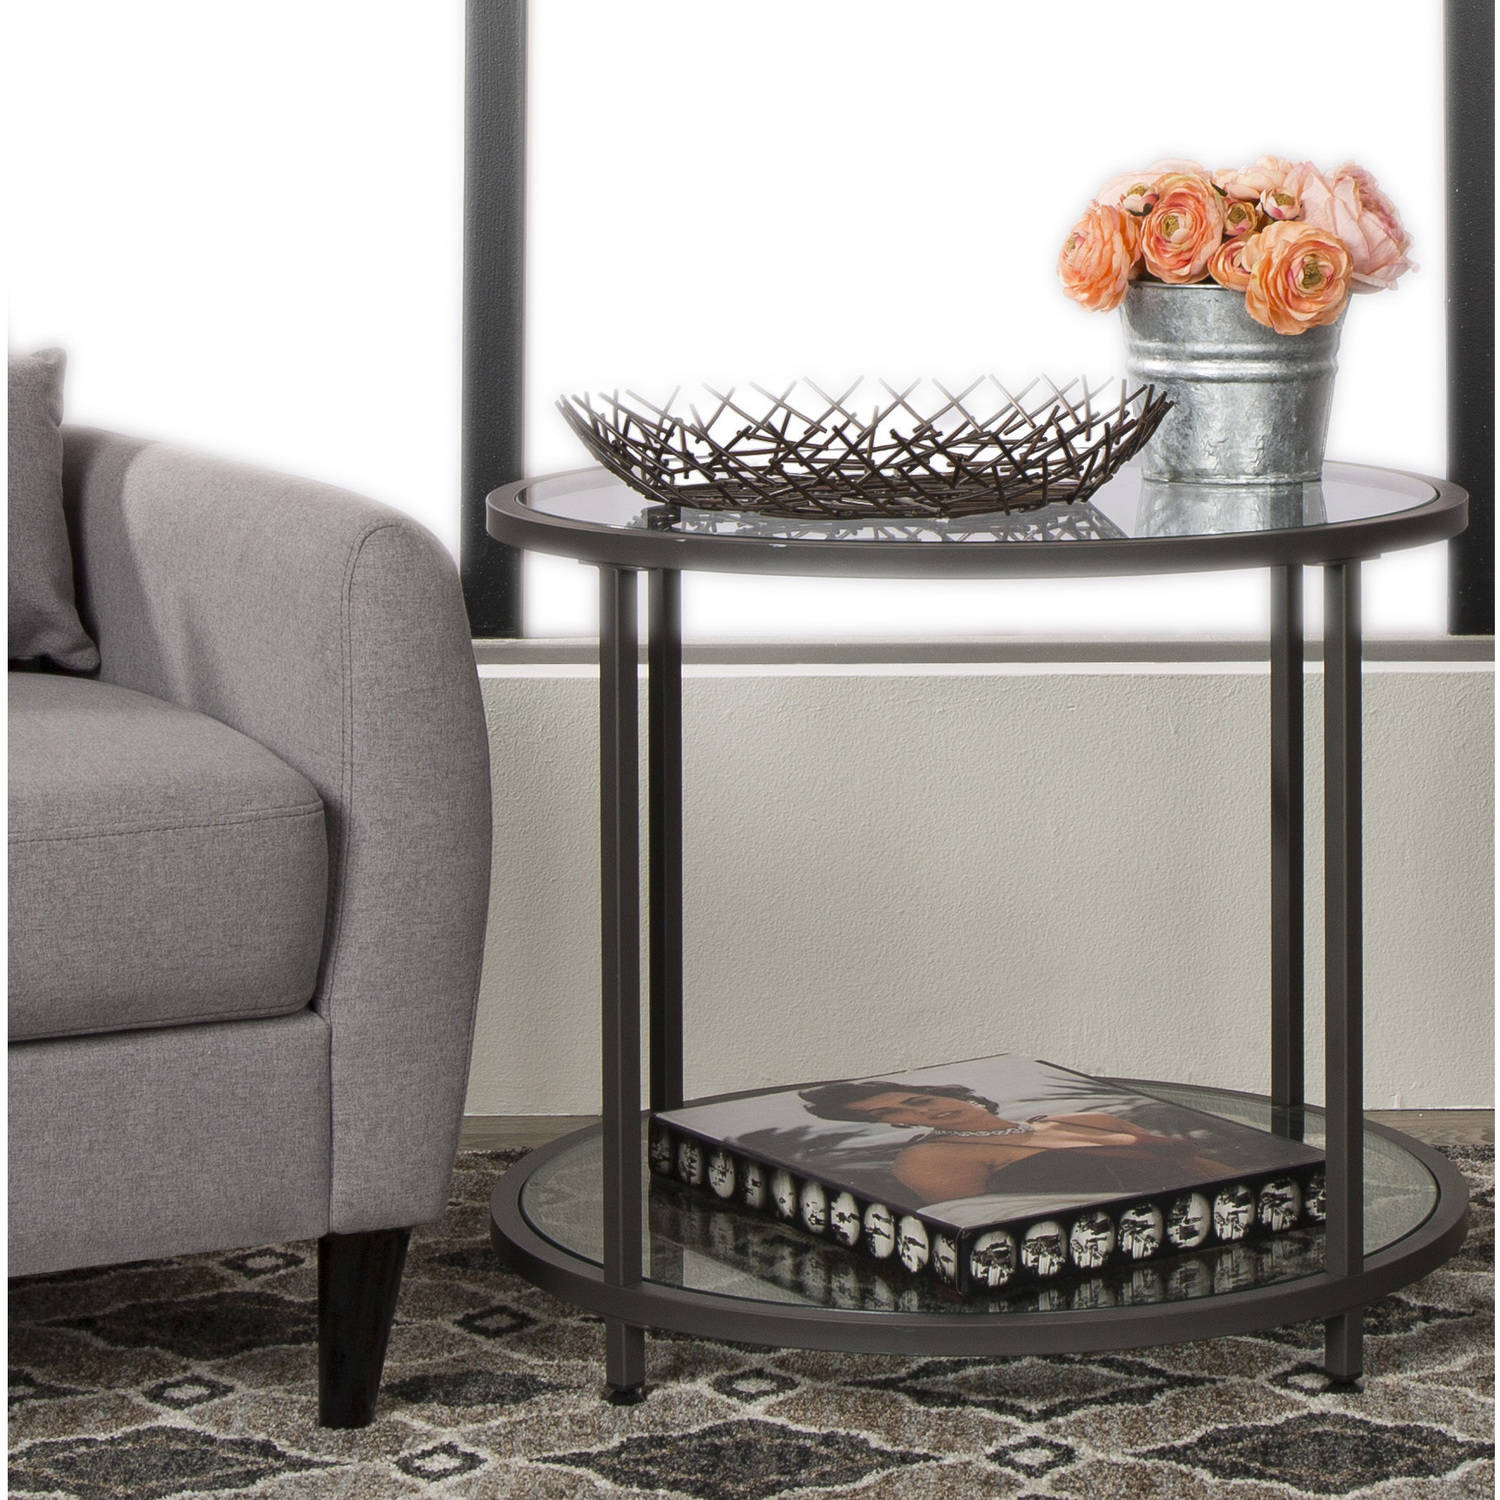 Studio Designs Home Camber Round End Table, Pewter